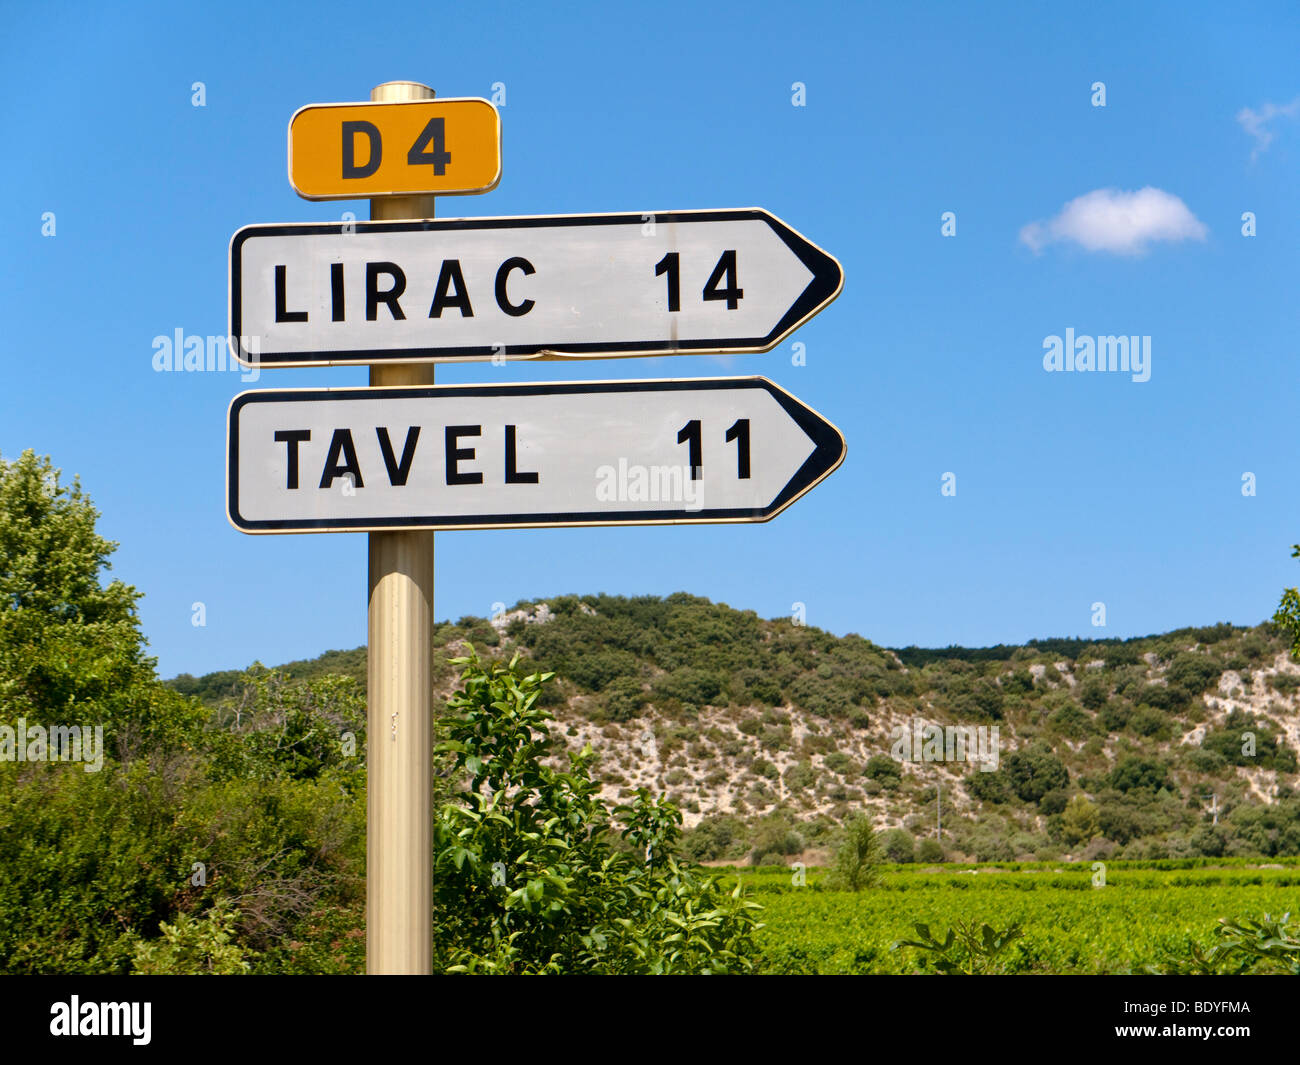 A traffic sign shows the direction to the renowned wine villages of Tavel and Lirac. - Stock Image